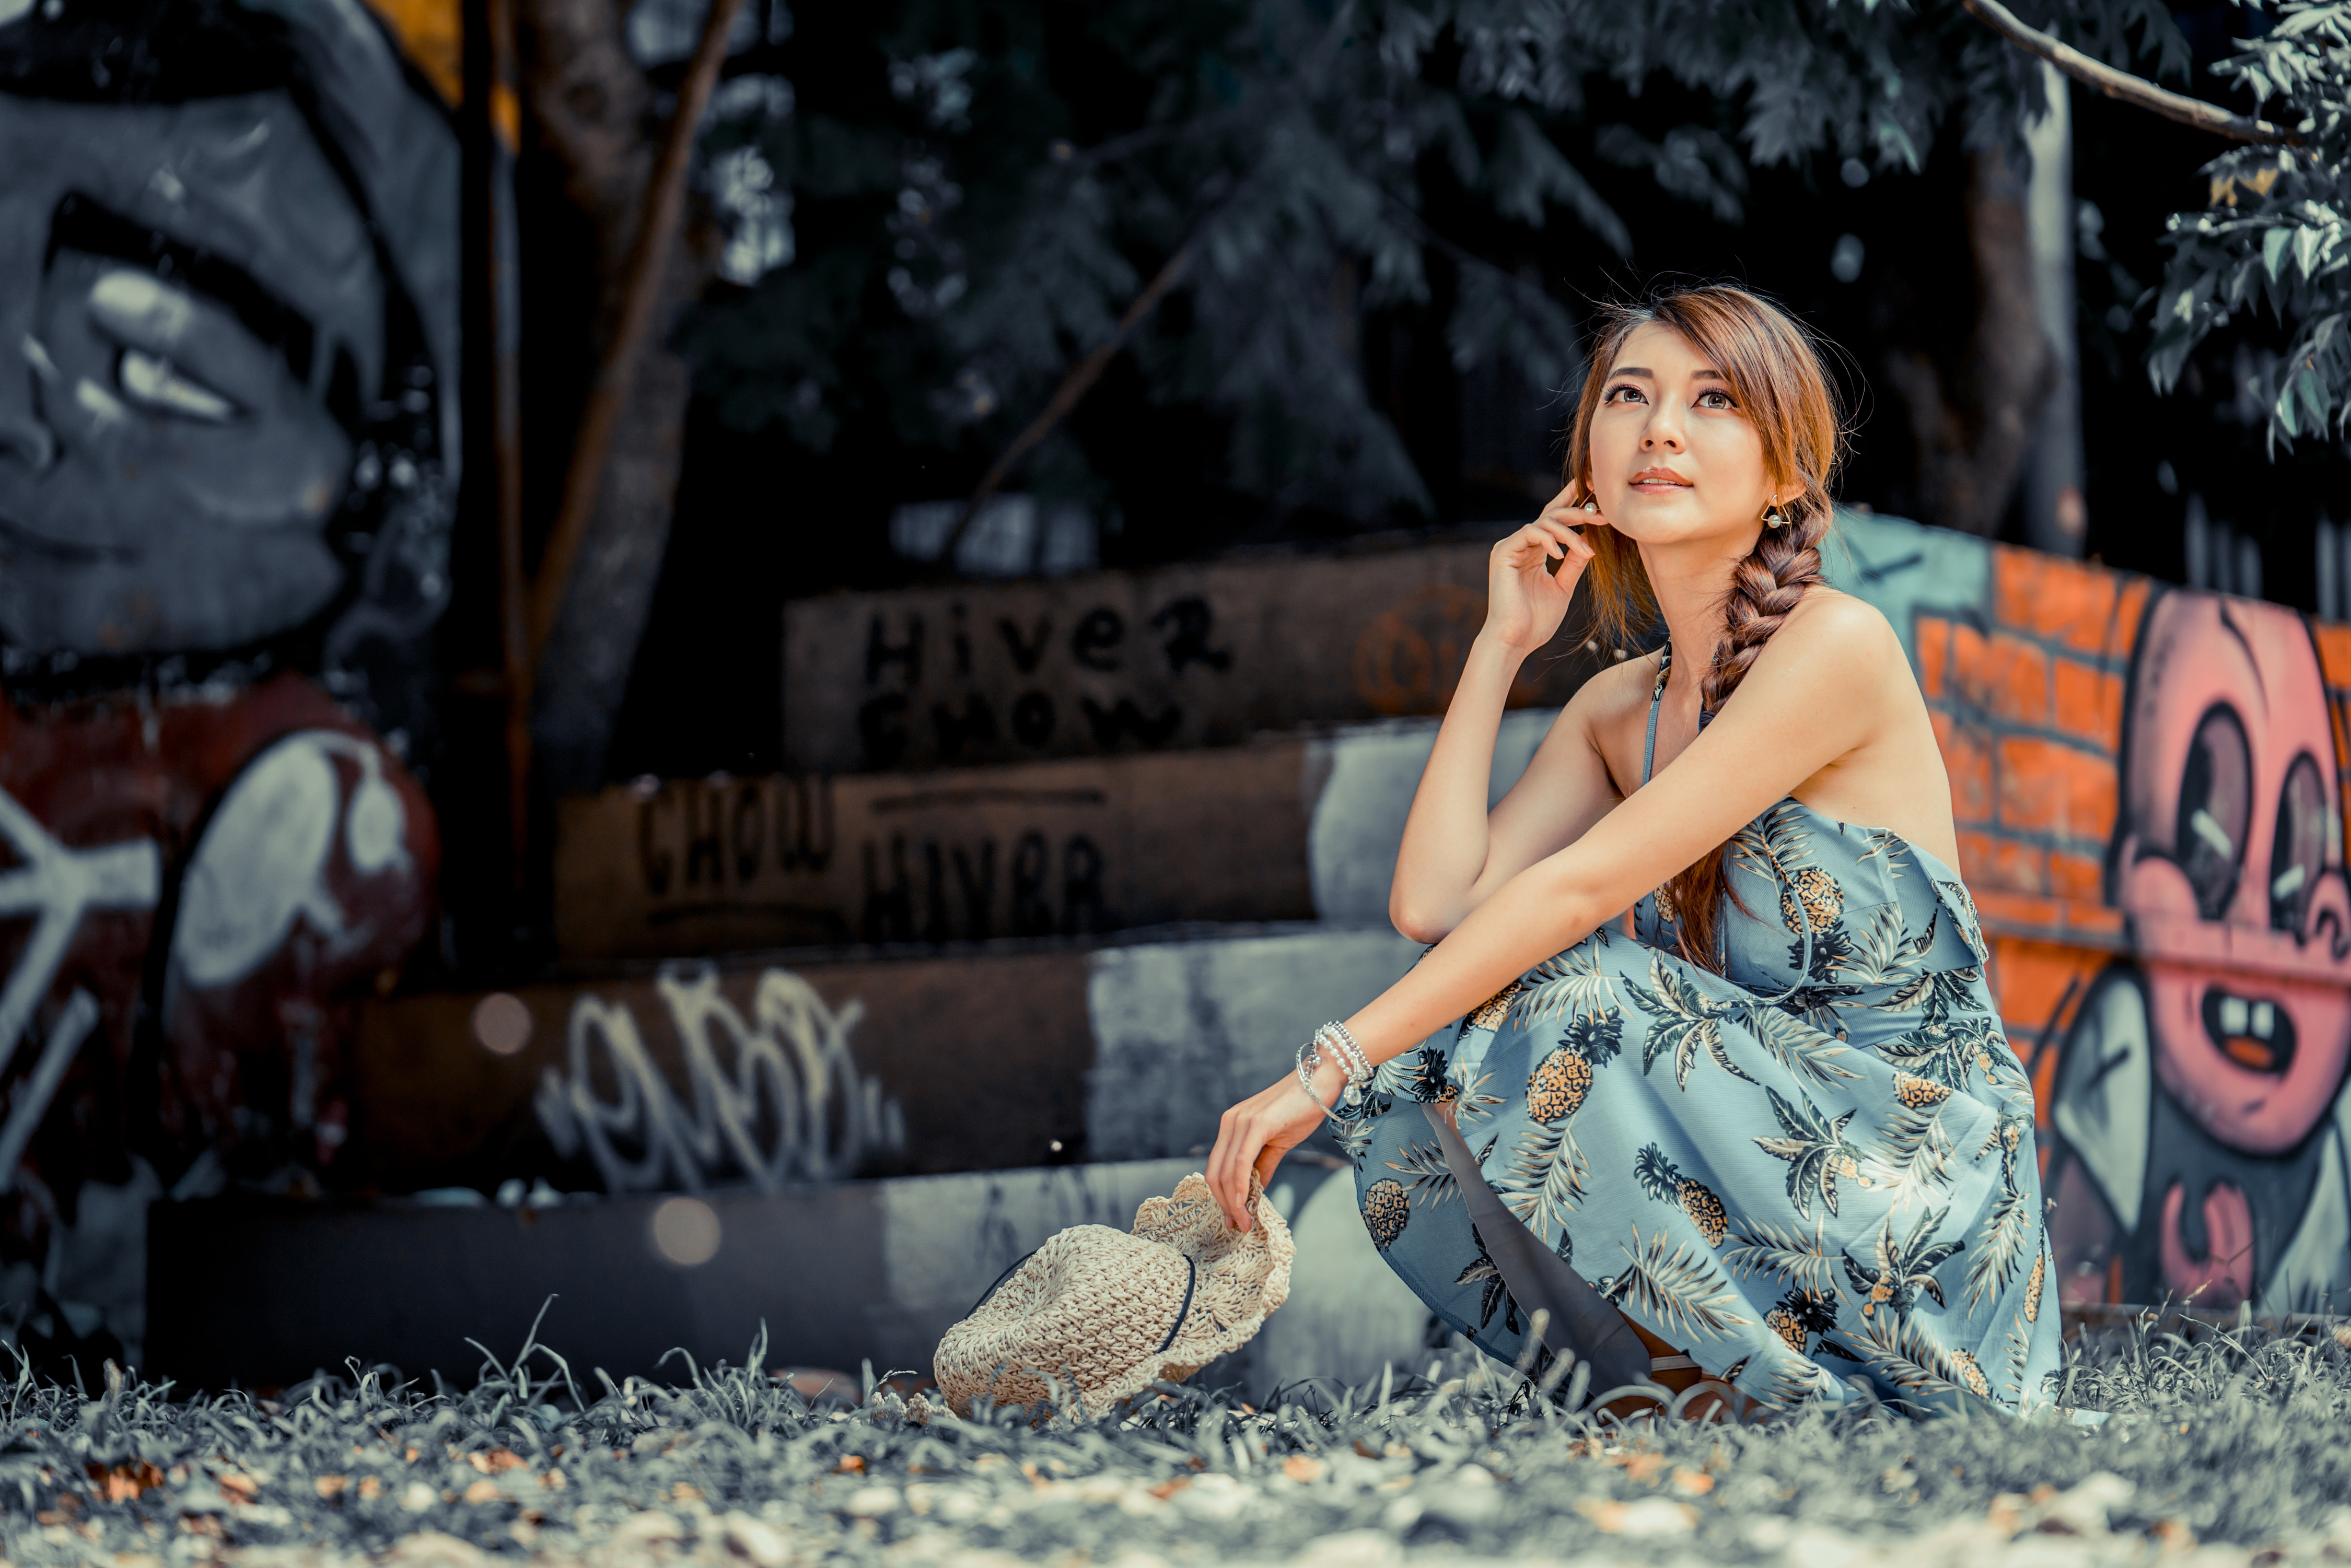 Photos Brown haired Bokeh Hat Girls Asiatic sit Hands frock 4500x3002 blurred background female young woman Asian Sitting gown Dress